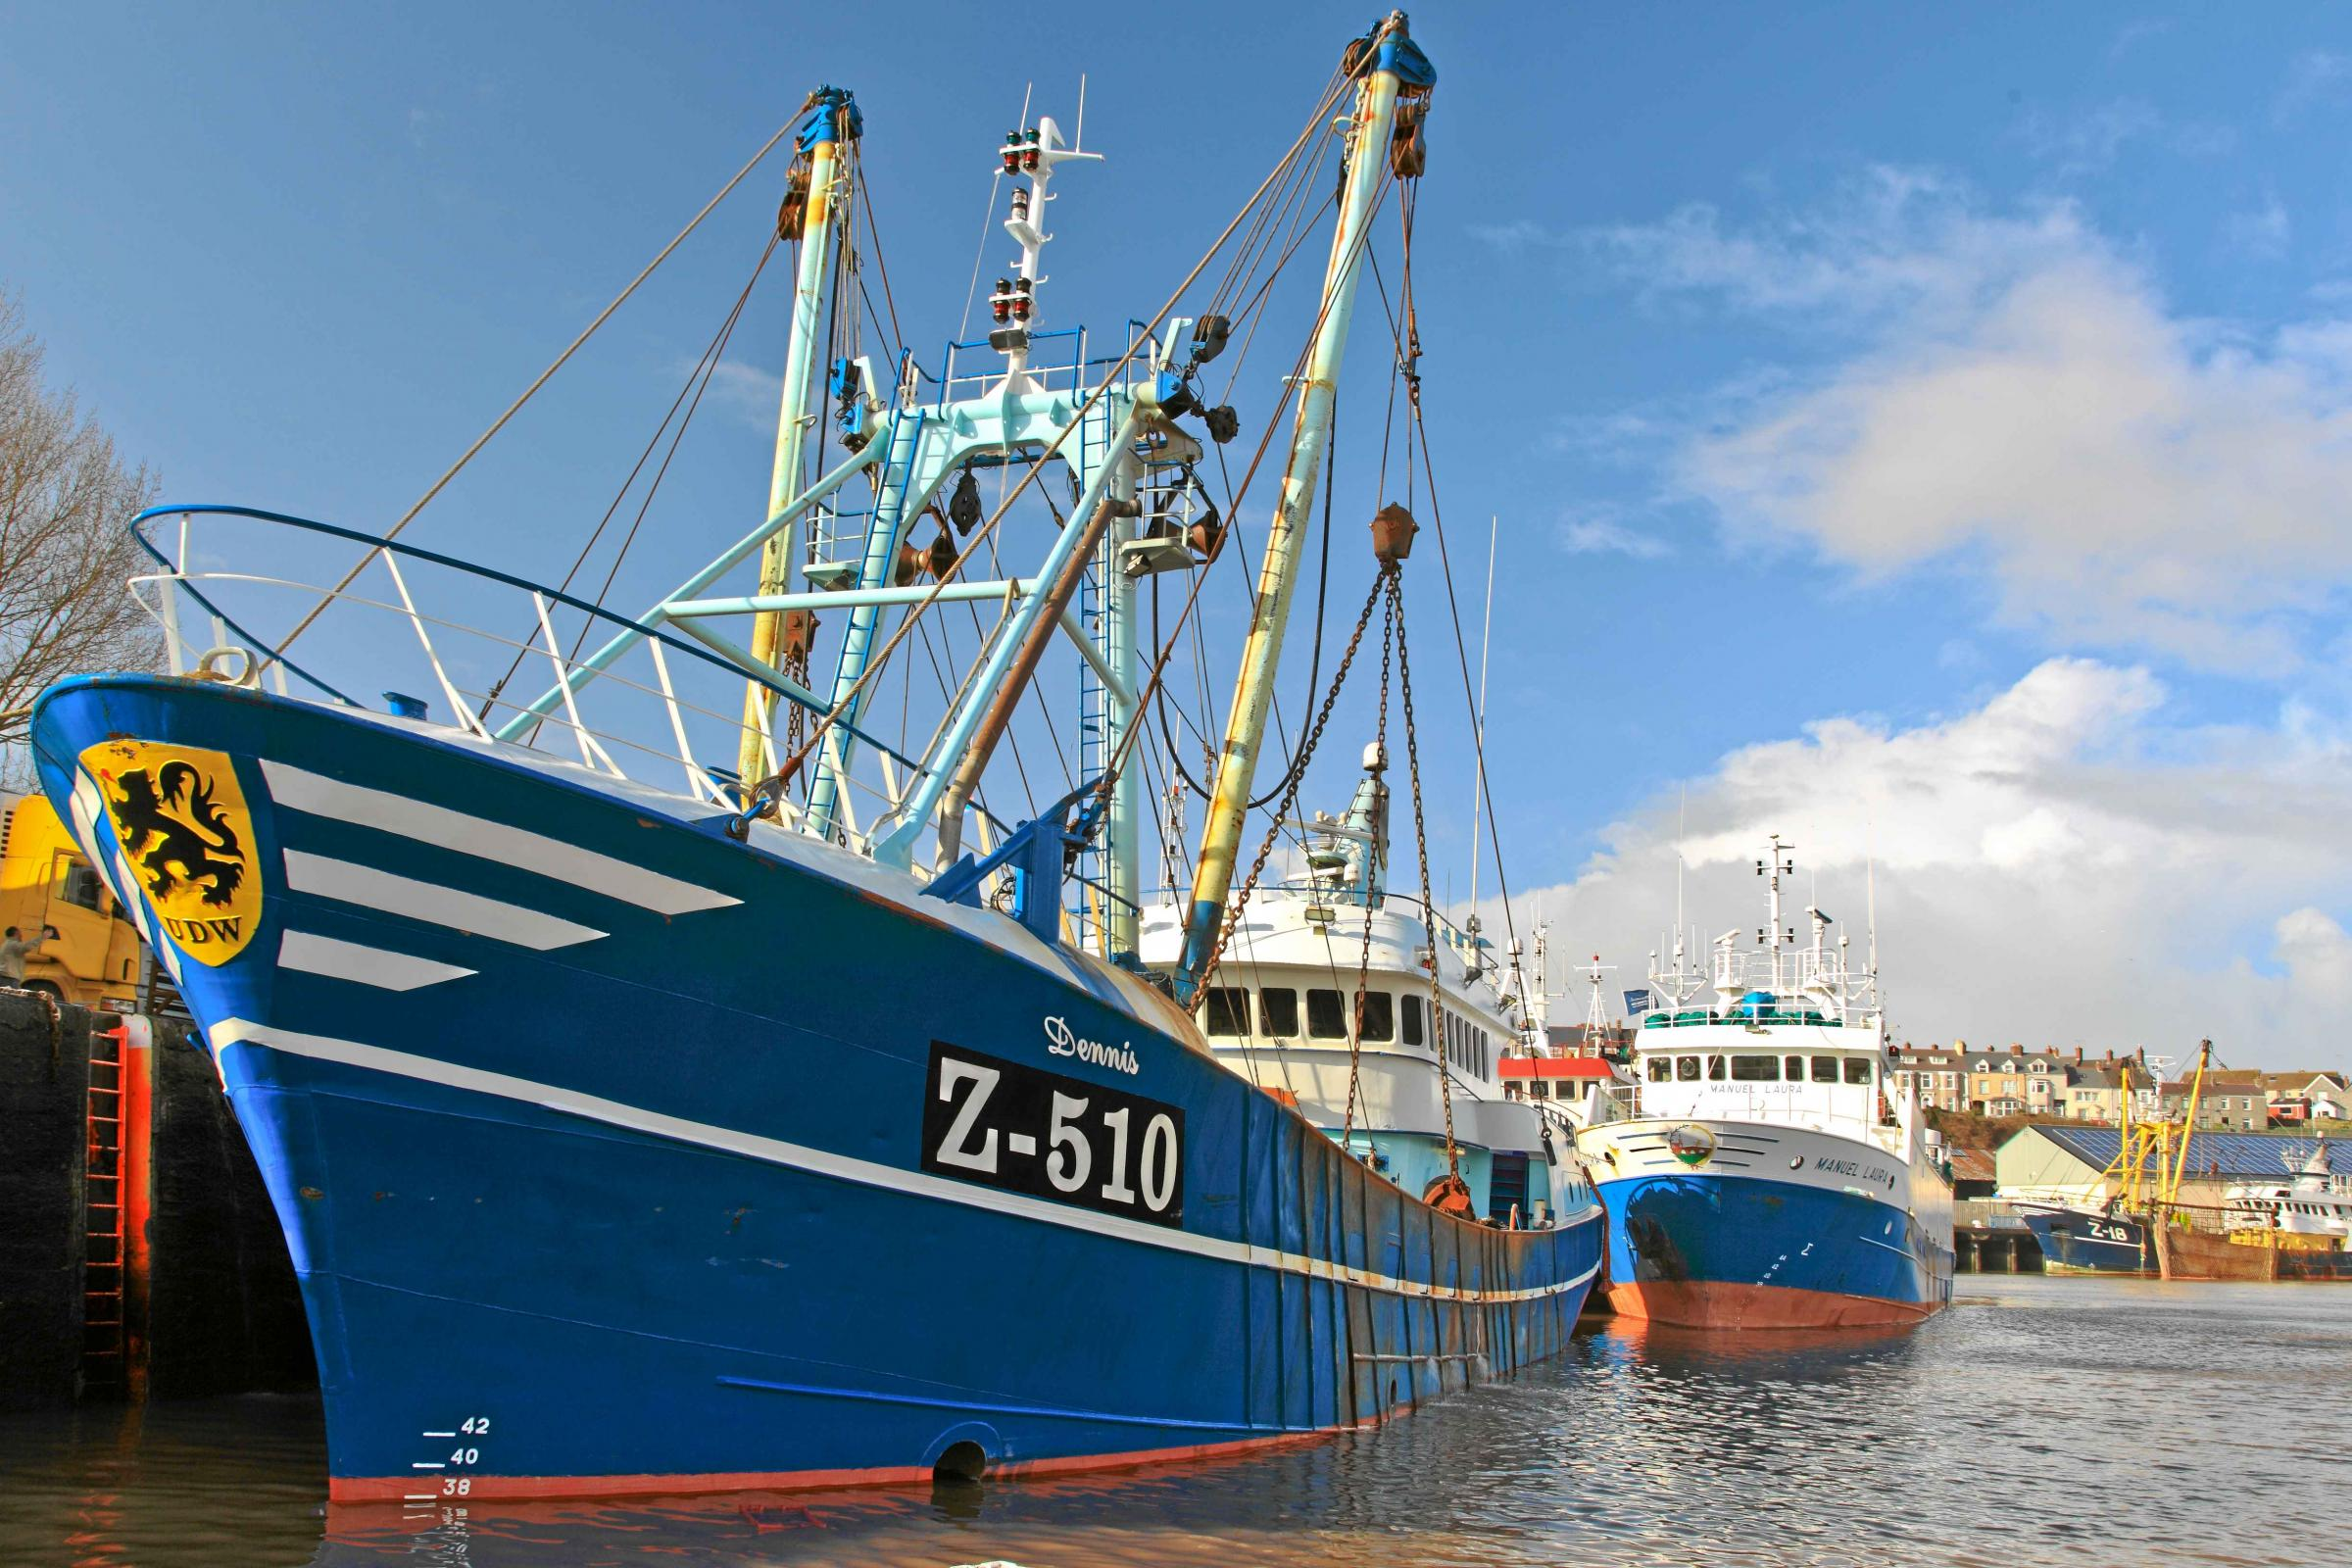 Fish dock boost: Belgian trawler Dennis Z-510 and Anglo-Spanish vessel Manuel Laura at Milford Fish Docks.